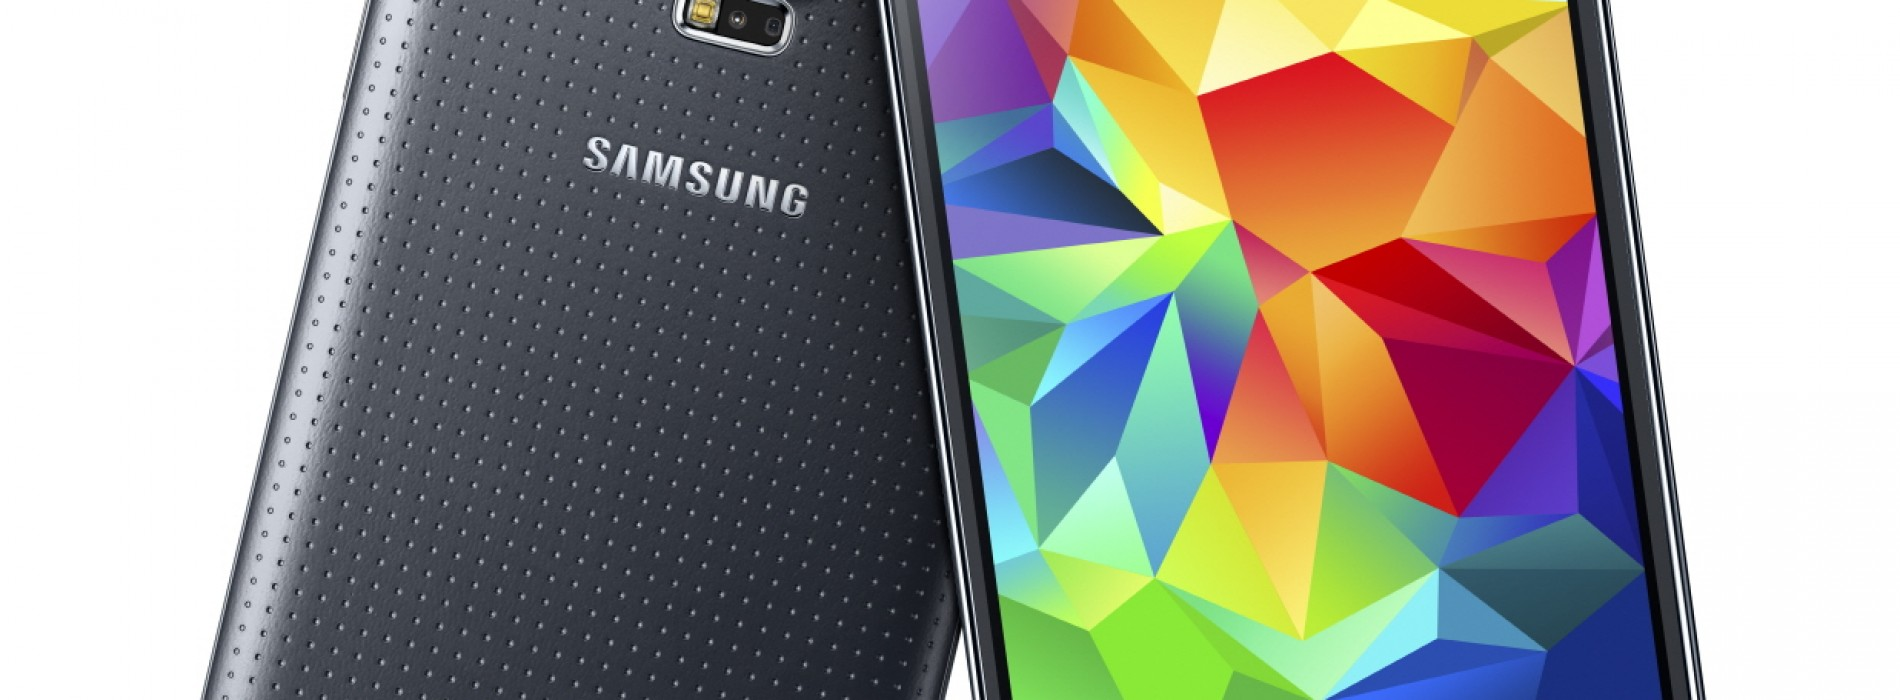 Samsung rolls out Galaxy S5 at Mobile World Congress